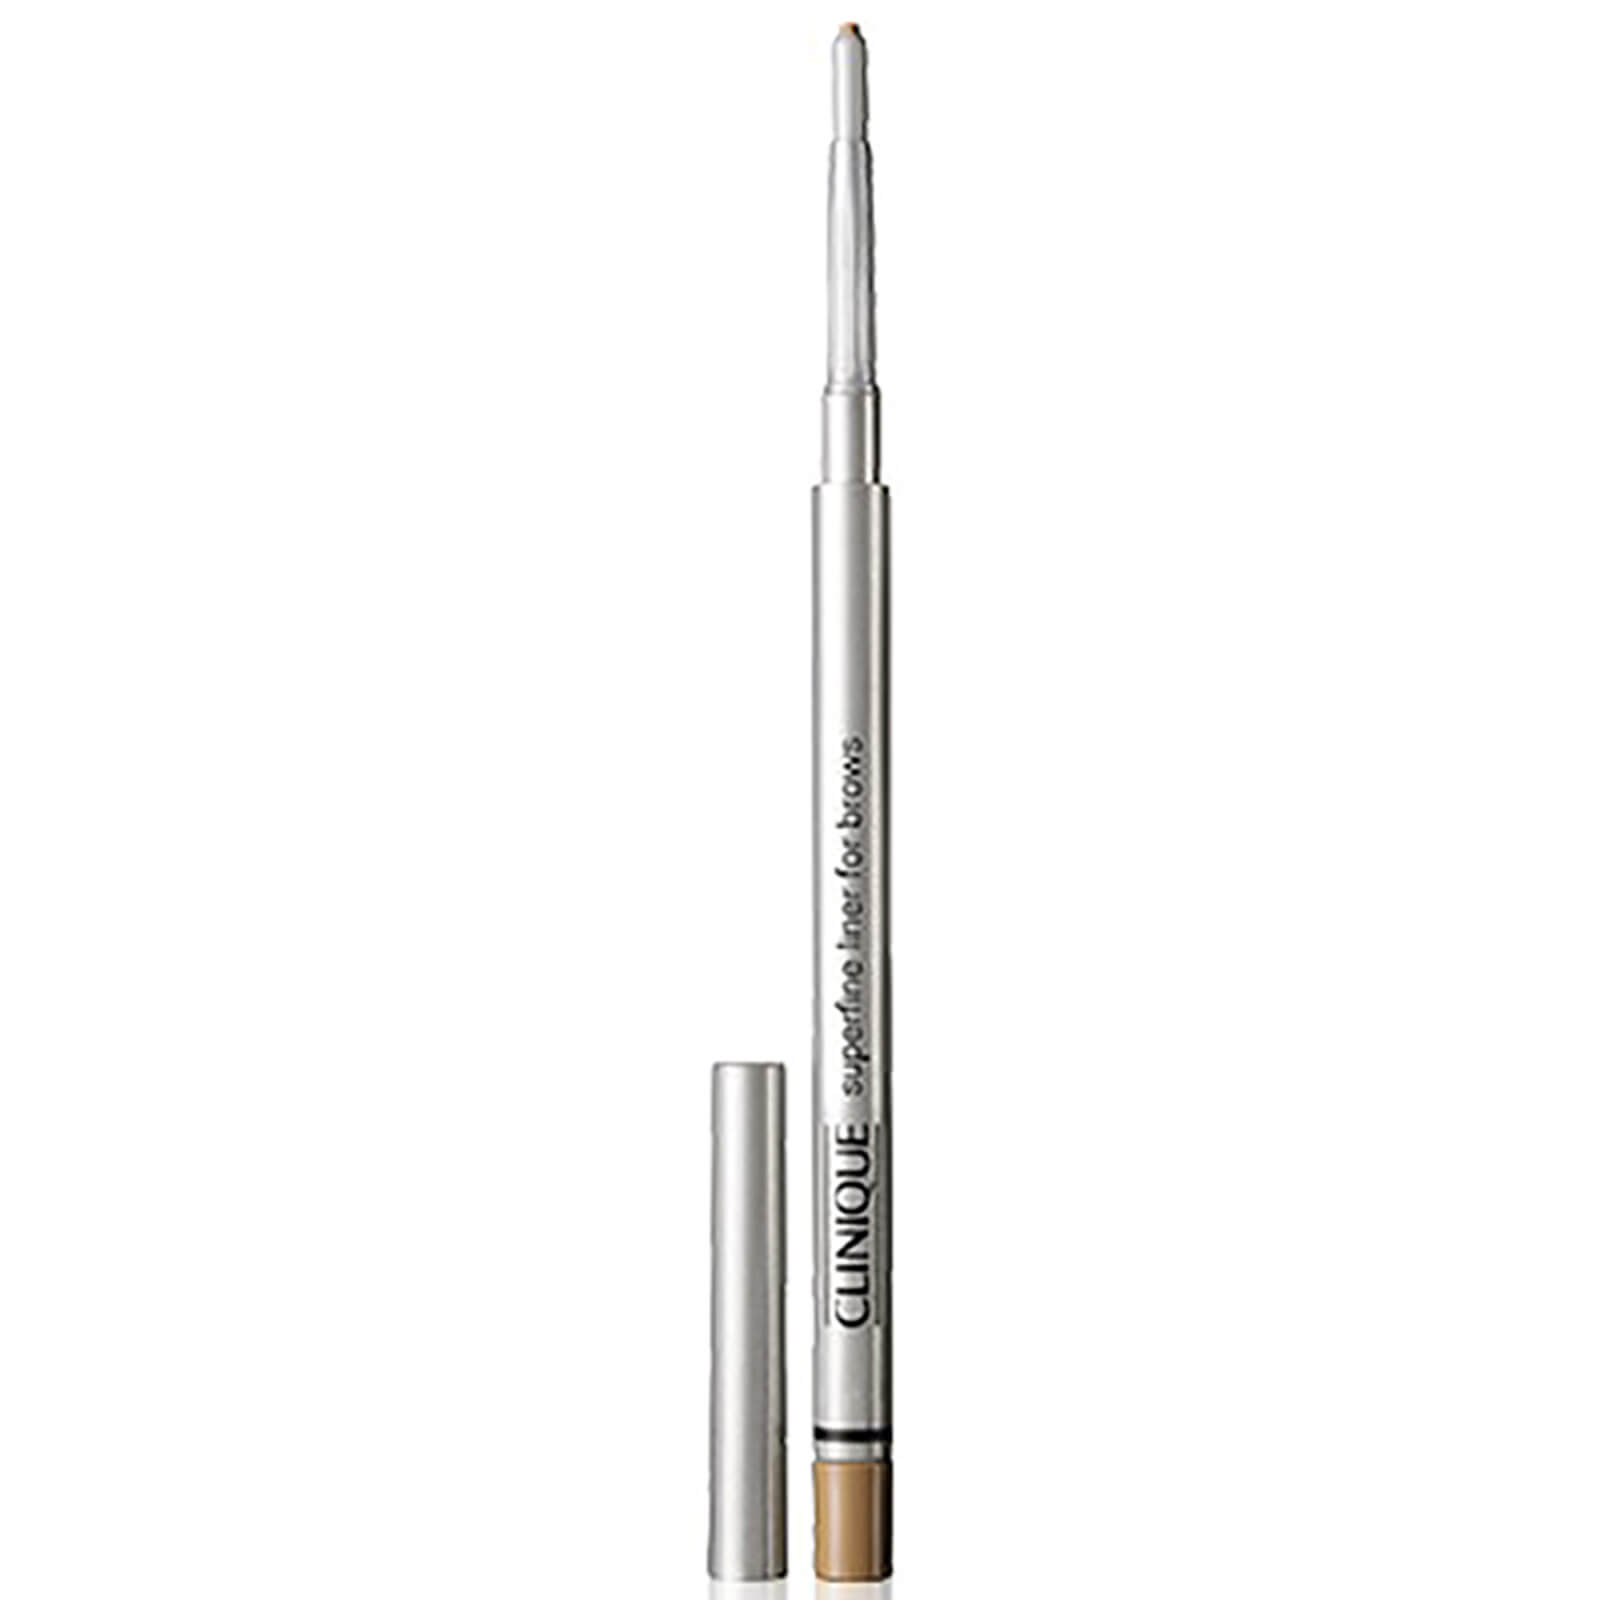 Clinique Super Fine Liner for Brows (Various Shades) - Soft Brown